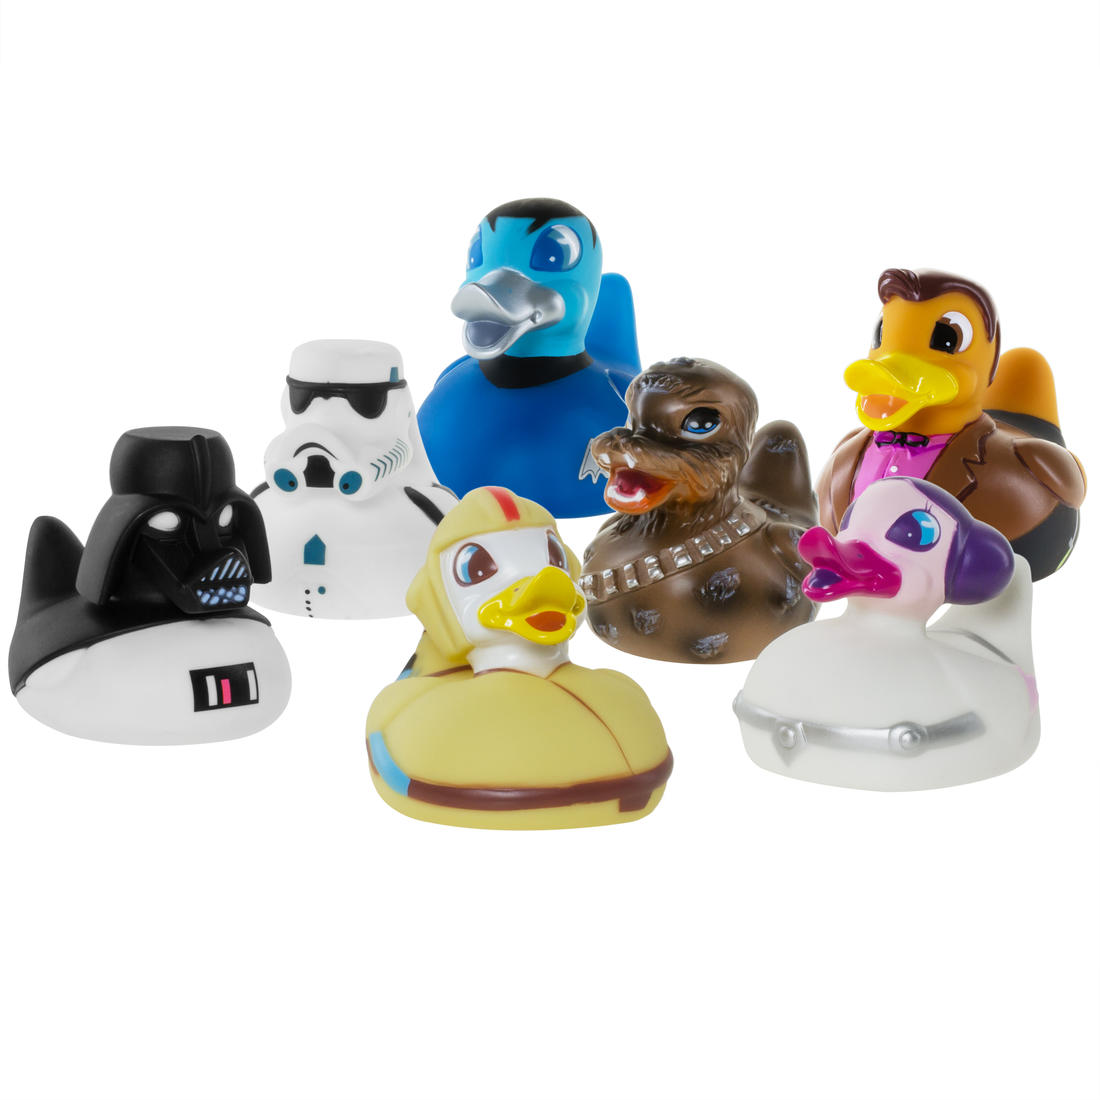 Science Fiction Colour Changing Rubber Ducks Getdigital